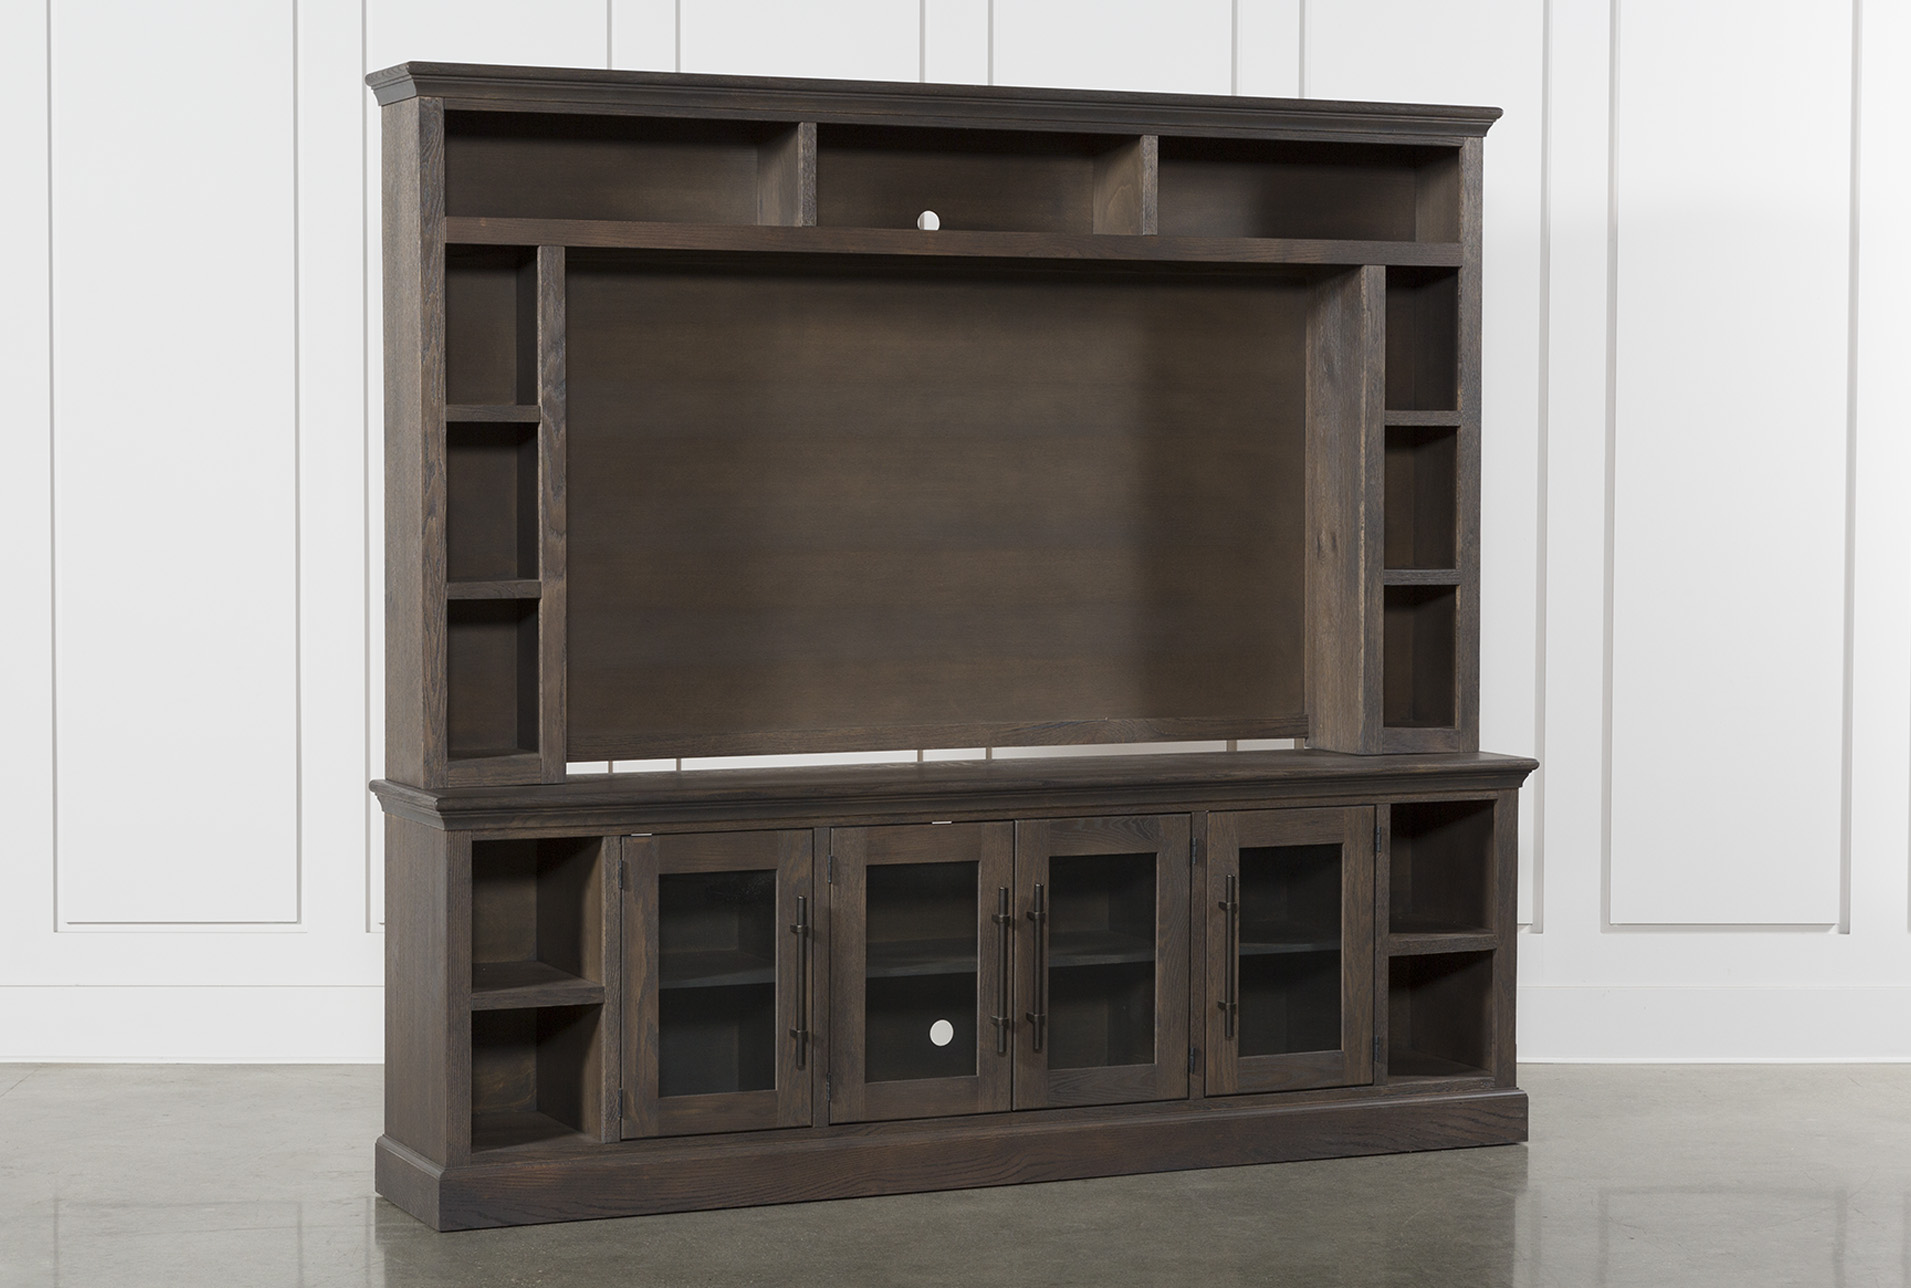 wakefield 2 piece wall entertainment center qty 1 has been successfully added to your cart